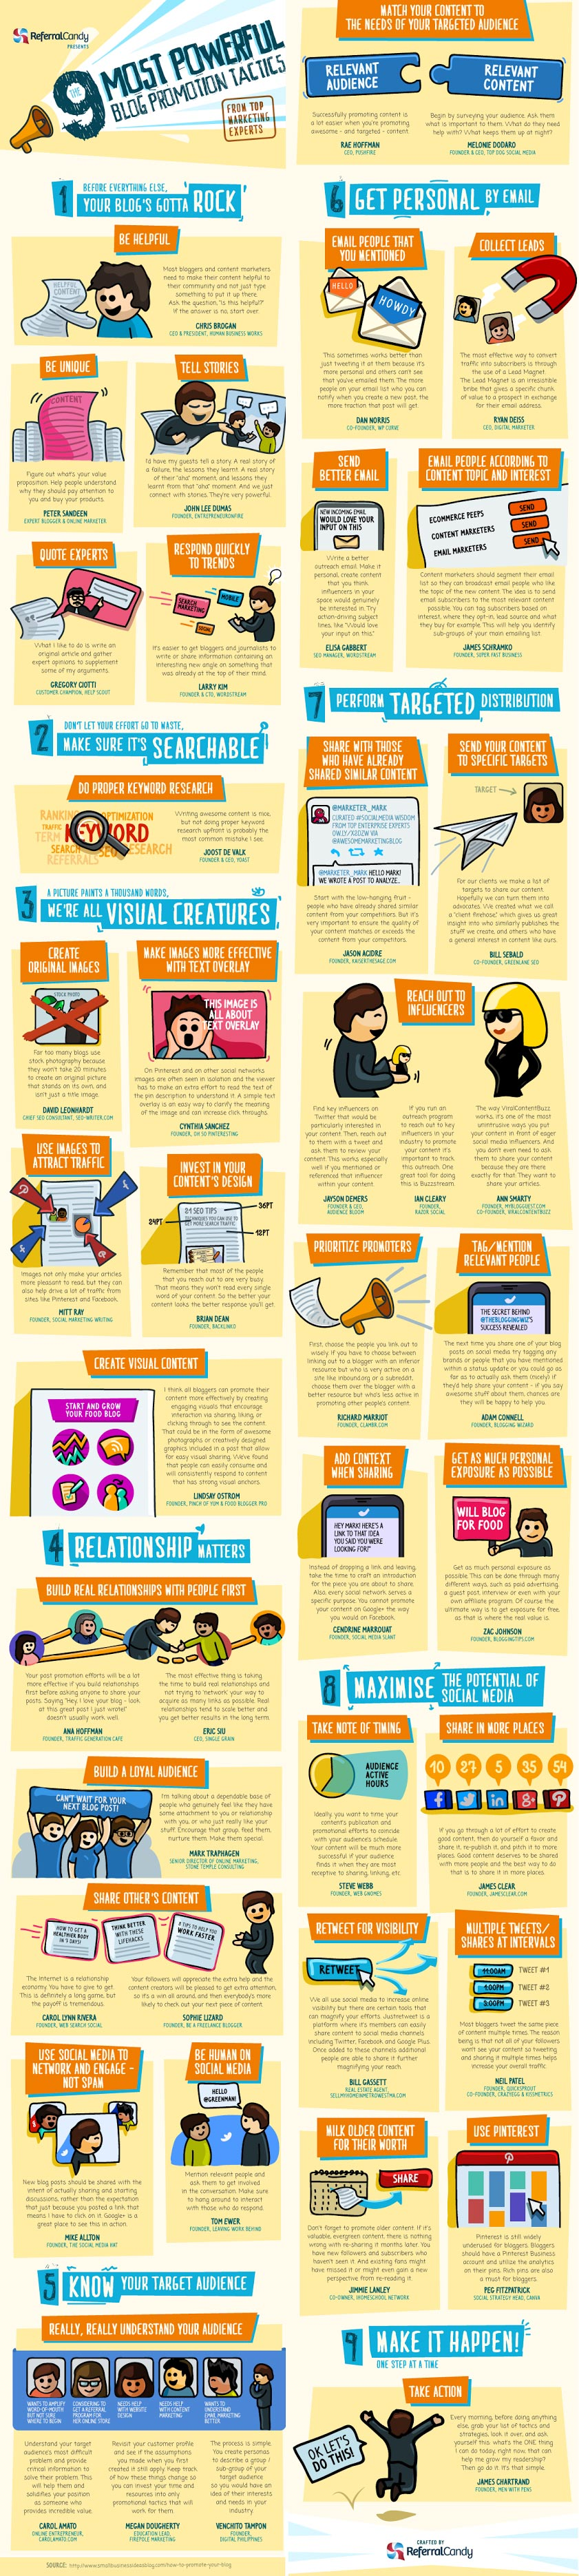 How to Promote Your Blog [Infographic] - Promotional Tactics and Marketing Recipes Revealed